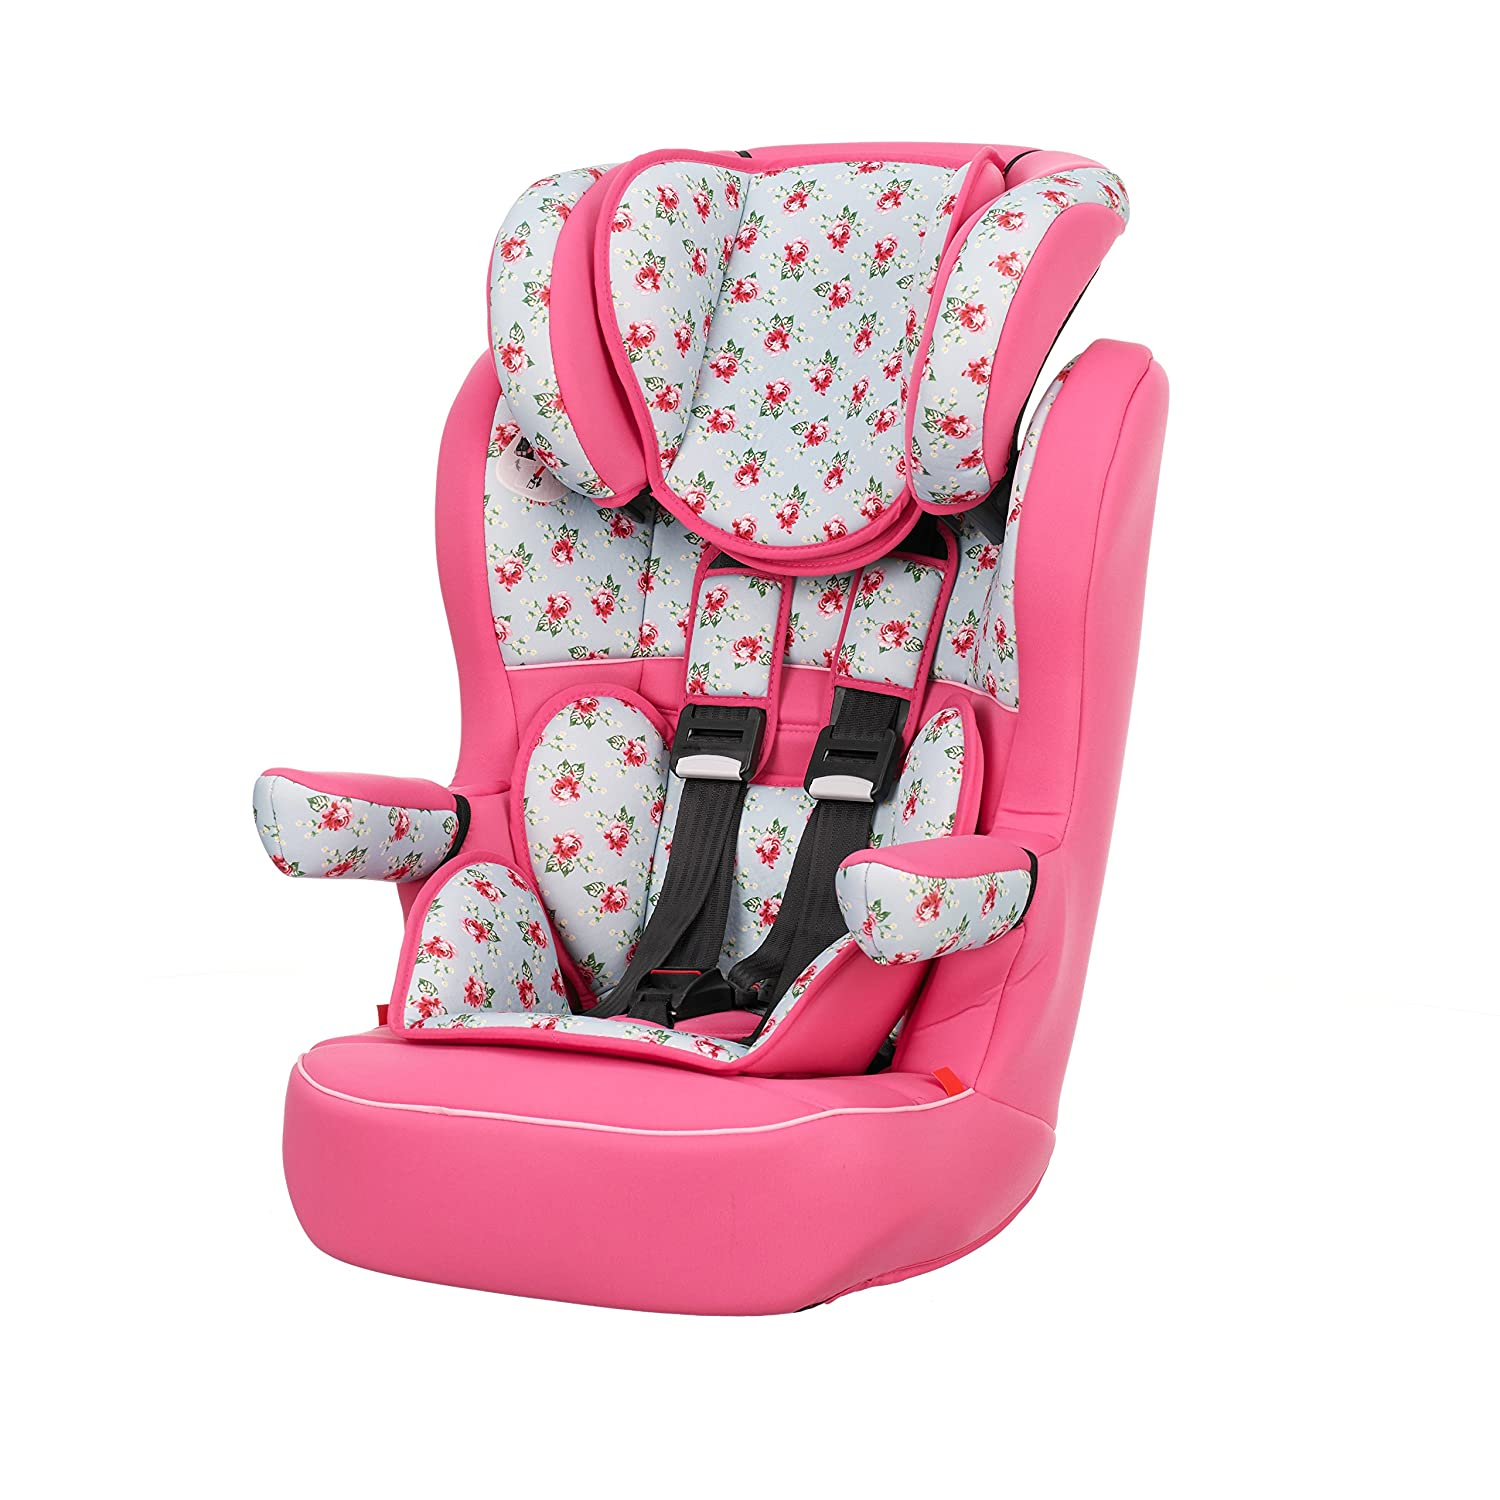 Obaby Group 1/2/3 Highback Booster Car Seat - Cottage Rose: Amazon